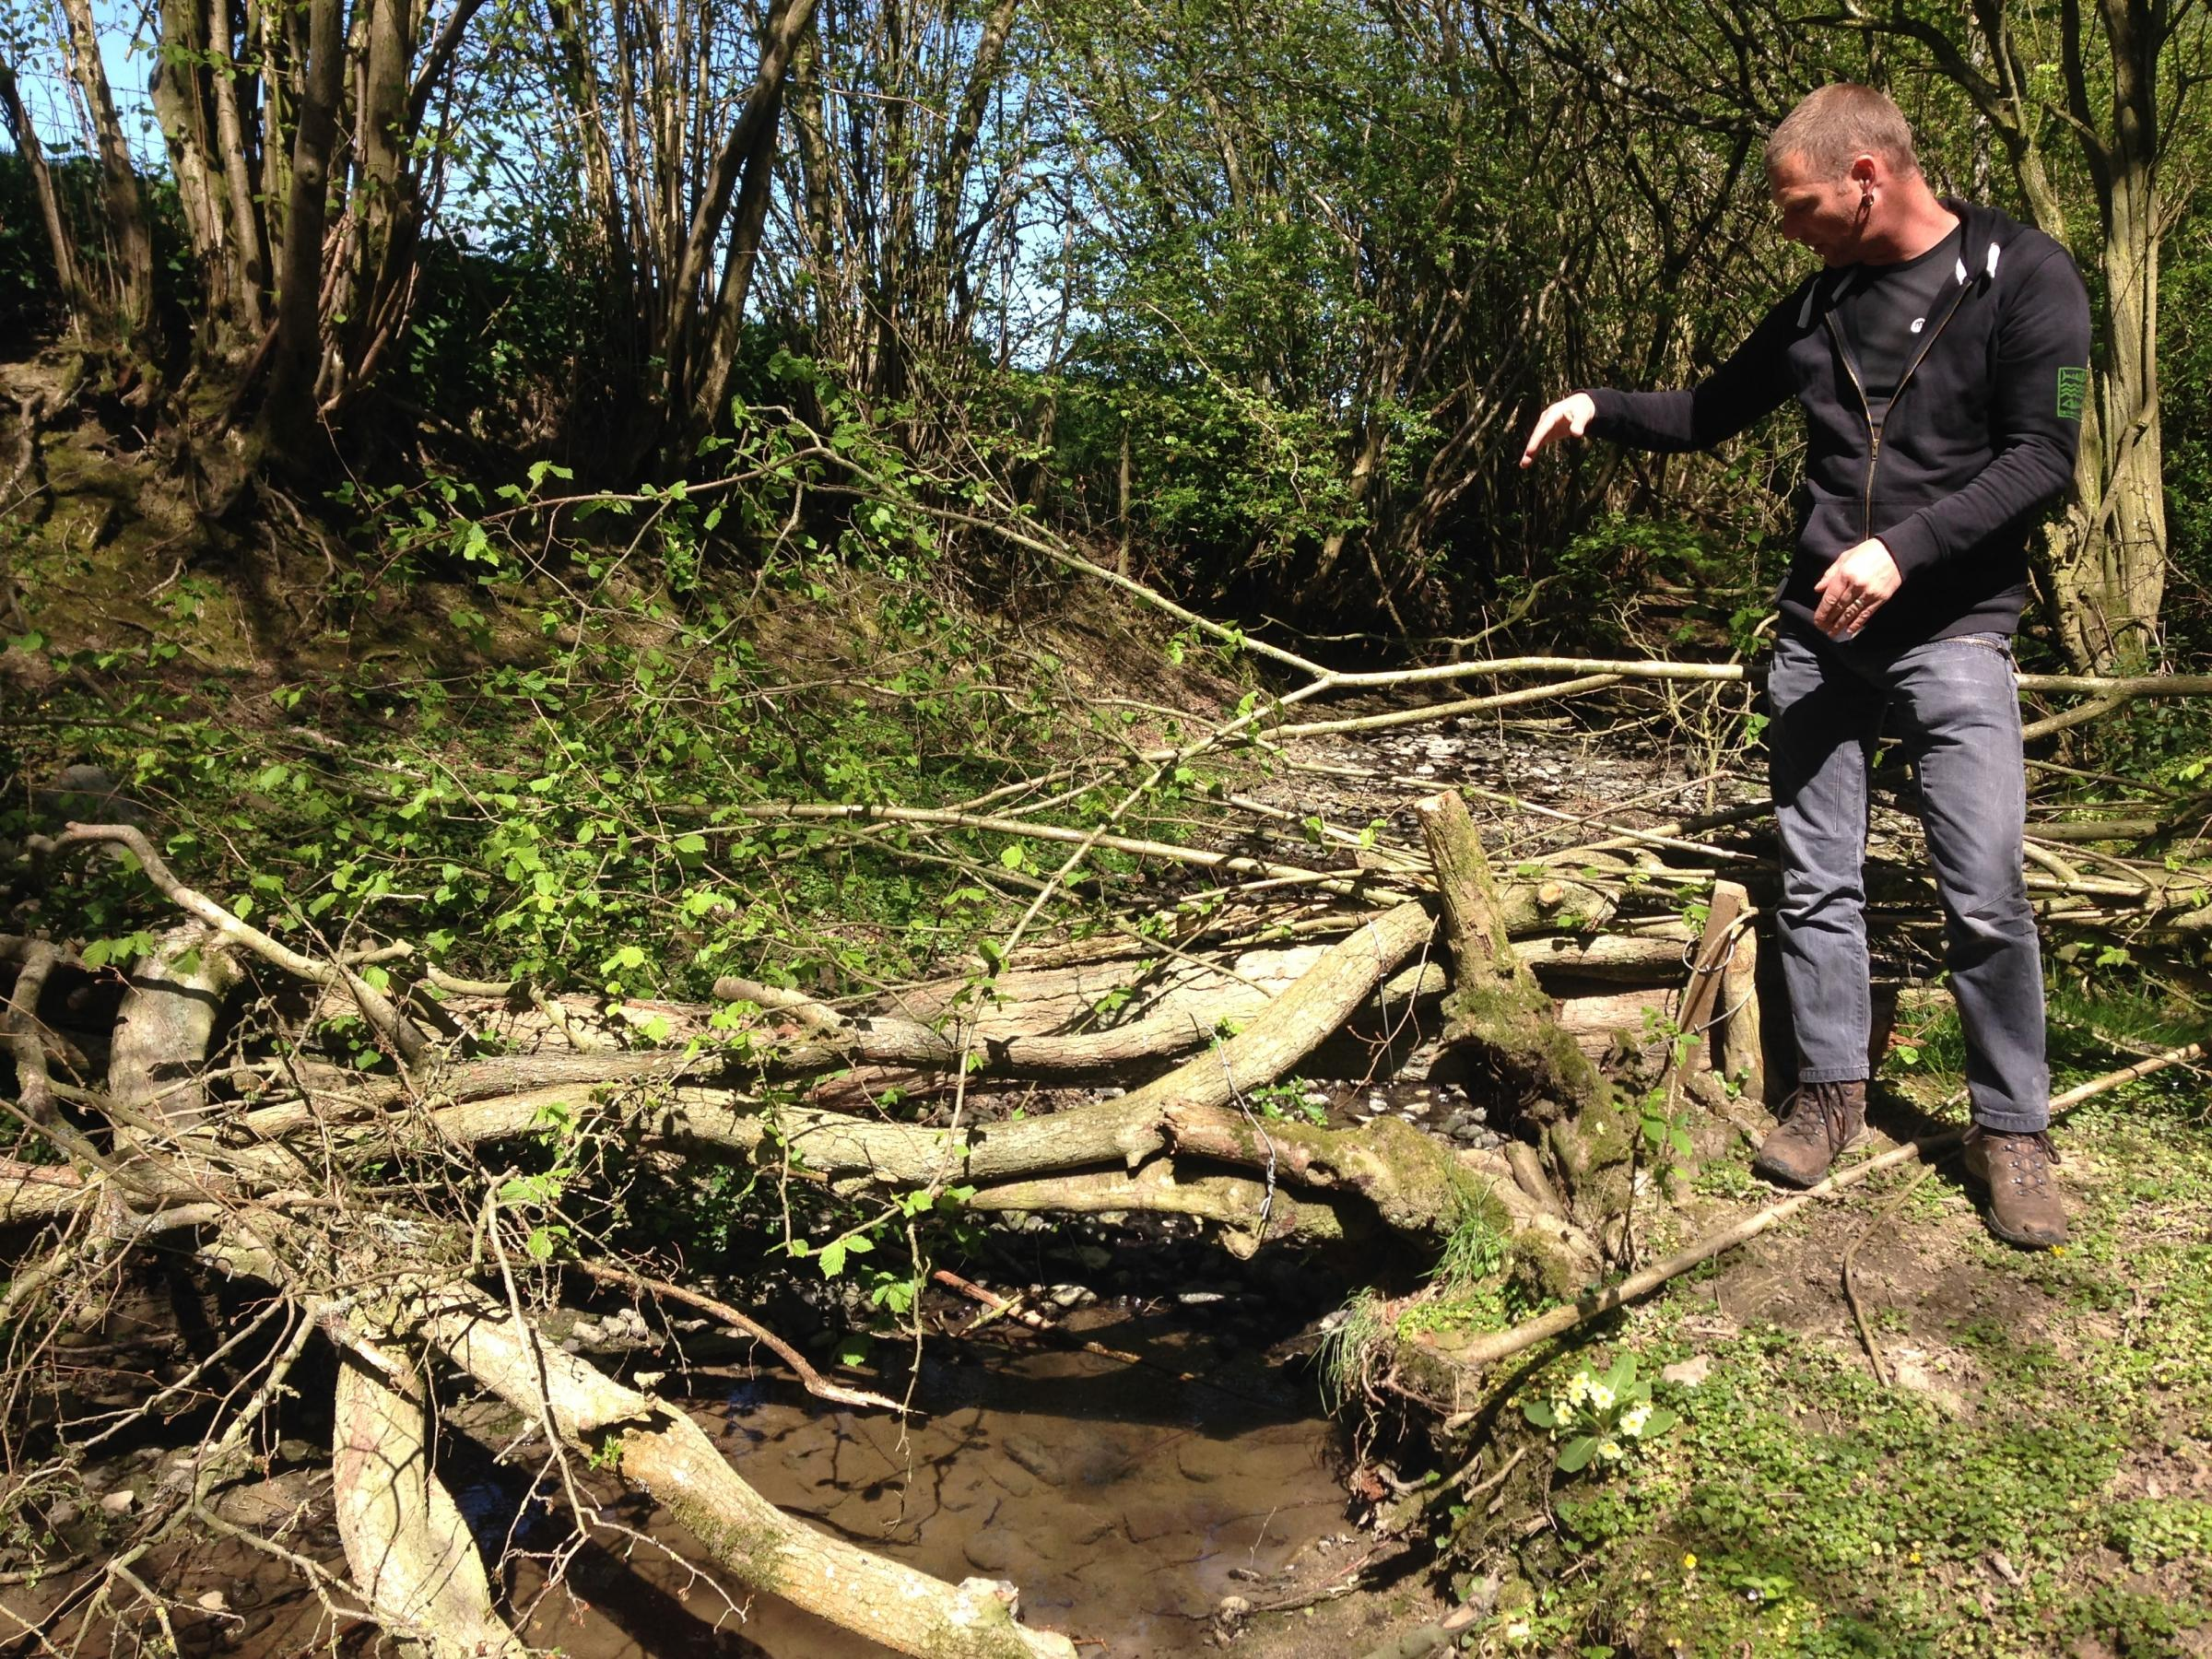 Luke Neal, river projects officer, Shropshire Wildlife Trust, creates 'leaky' woody debris barriers in watercourses high up in the catchment to help to slow flood waters - one of the possible interventions when working with natural processes